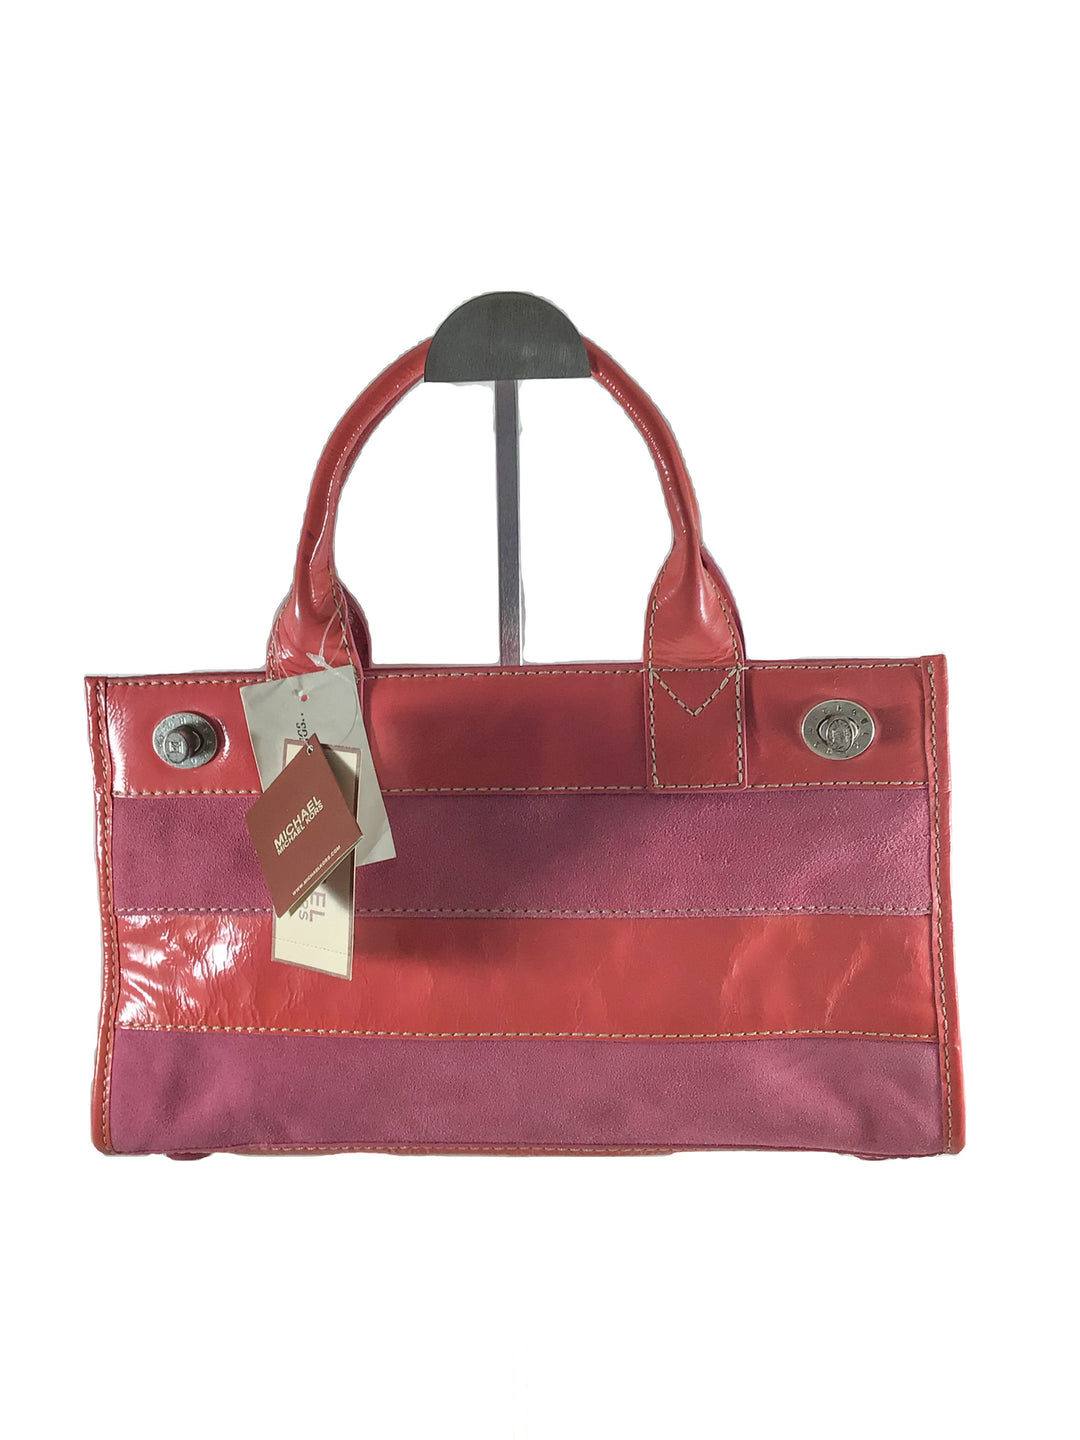 Primary Photo - BRAND: MICHAEL BY MICHAEL KORS <BR>STYLE: HANDBAG <BR>COLOR: PINK <BR>SIZE: MEDIUM <BR>SKU: 213-213118-32122